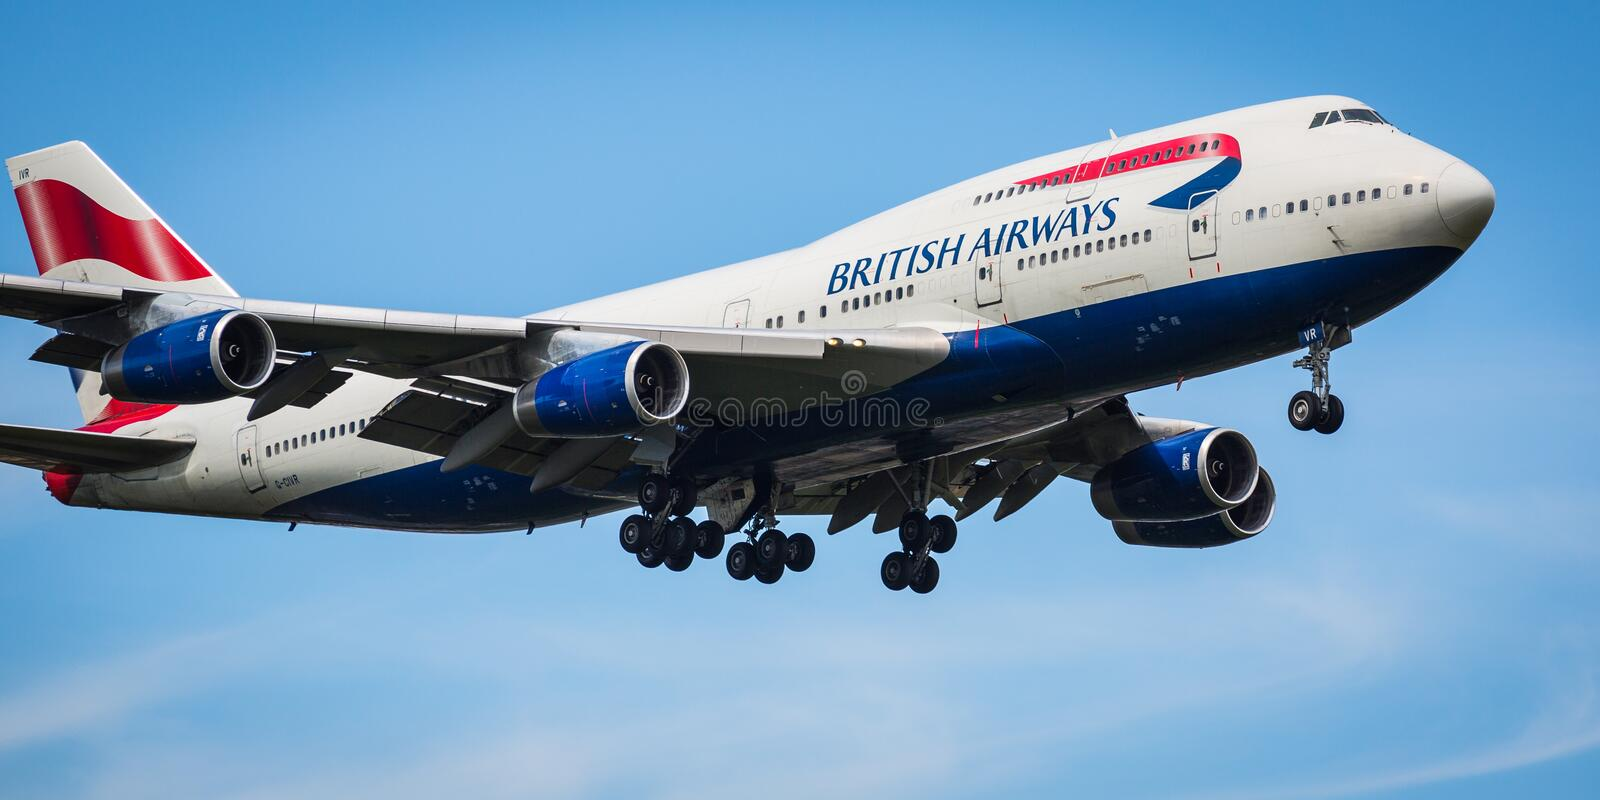 British Airways Boeing 747-400 aircraft. Landing at London Heathrow airport 2nd August 2015, serial G-CIVR royalty free stock image